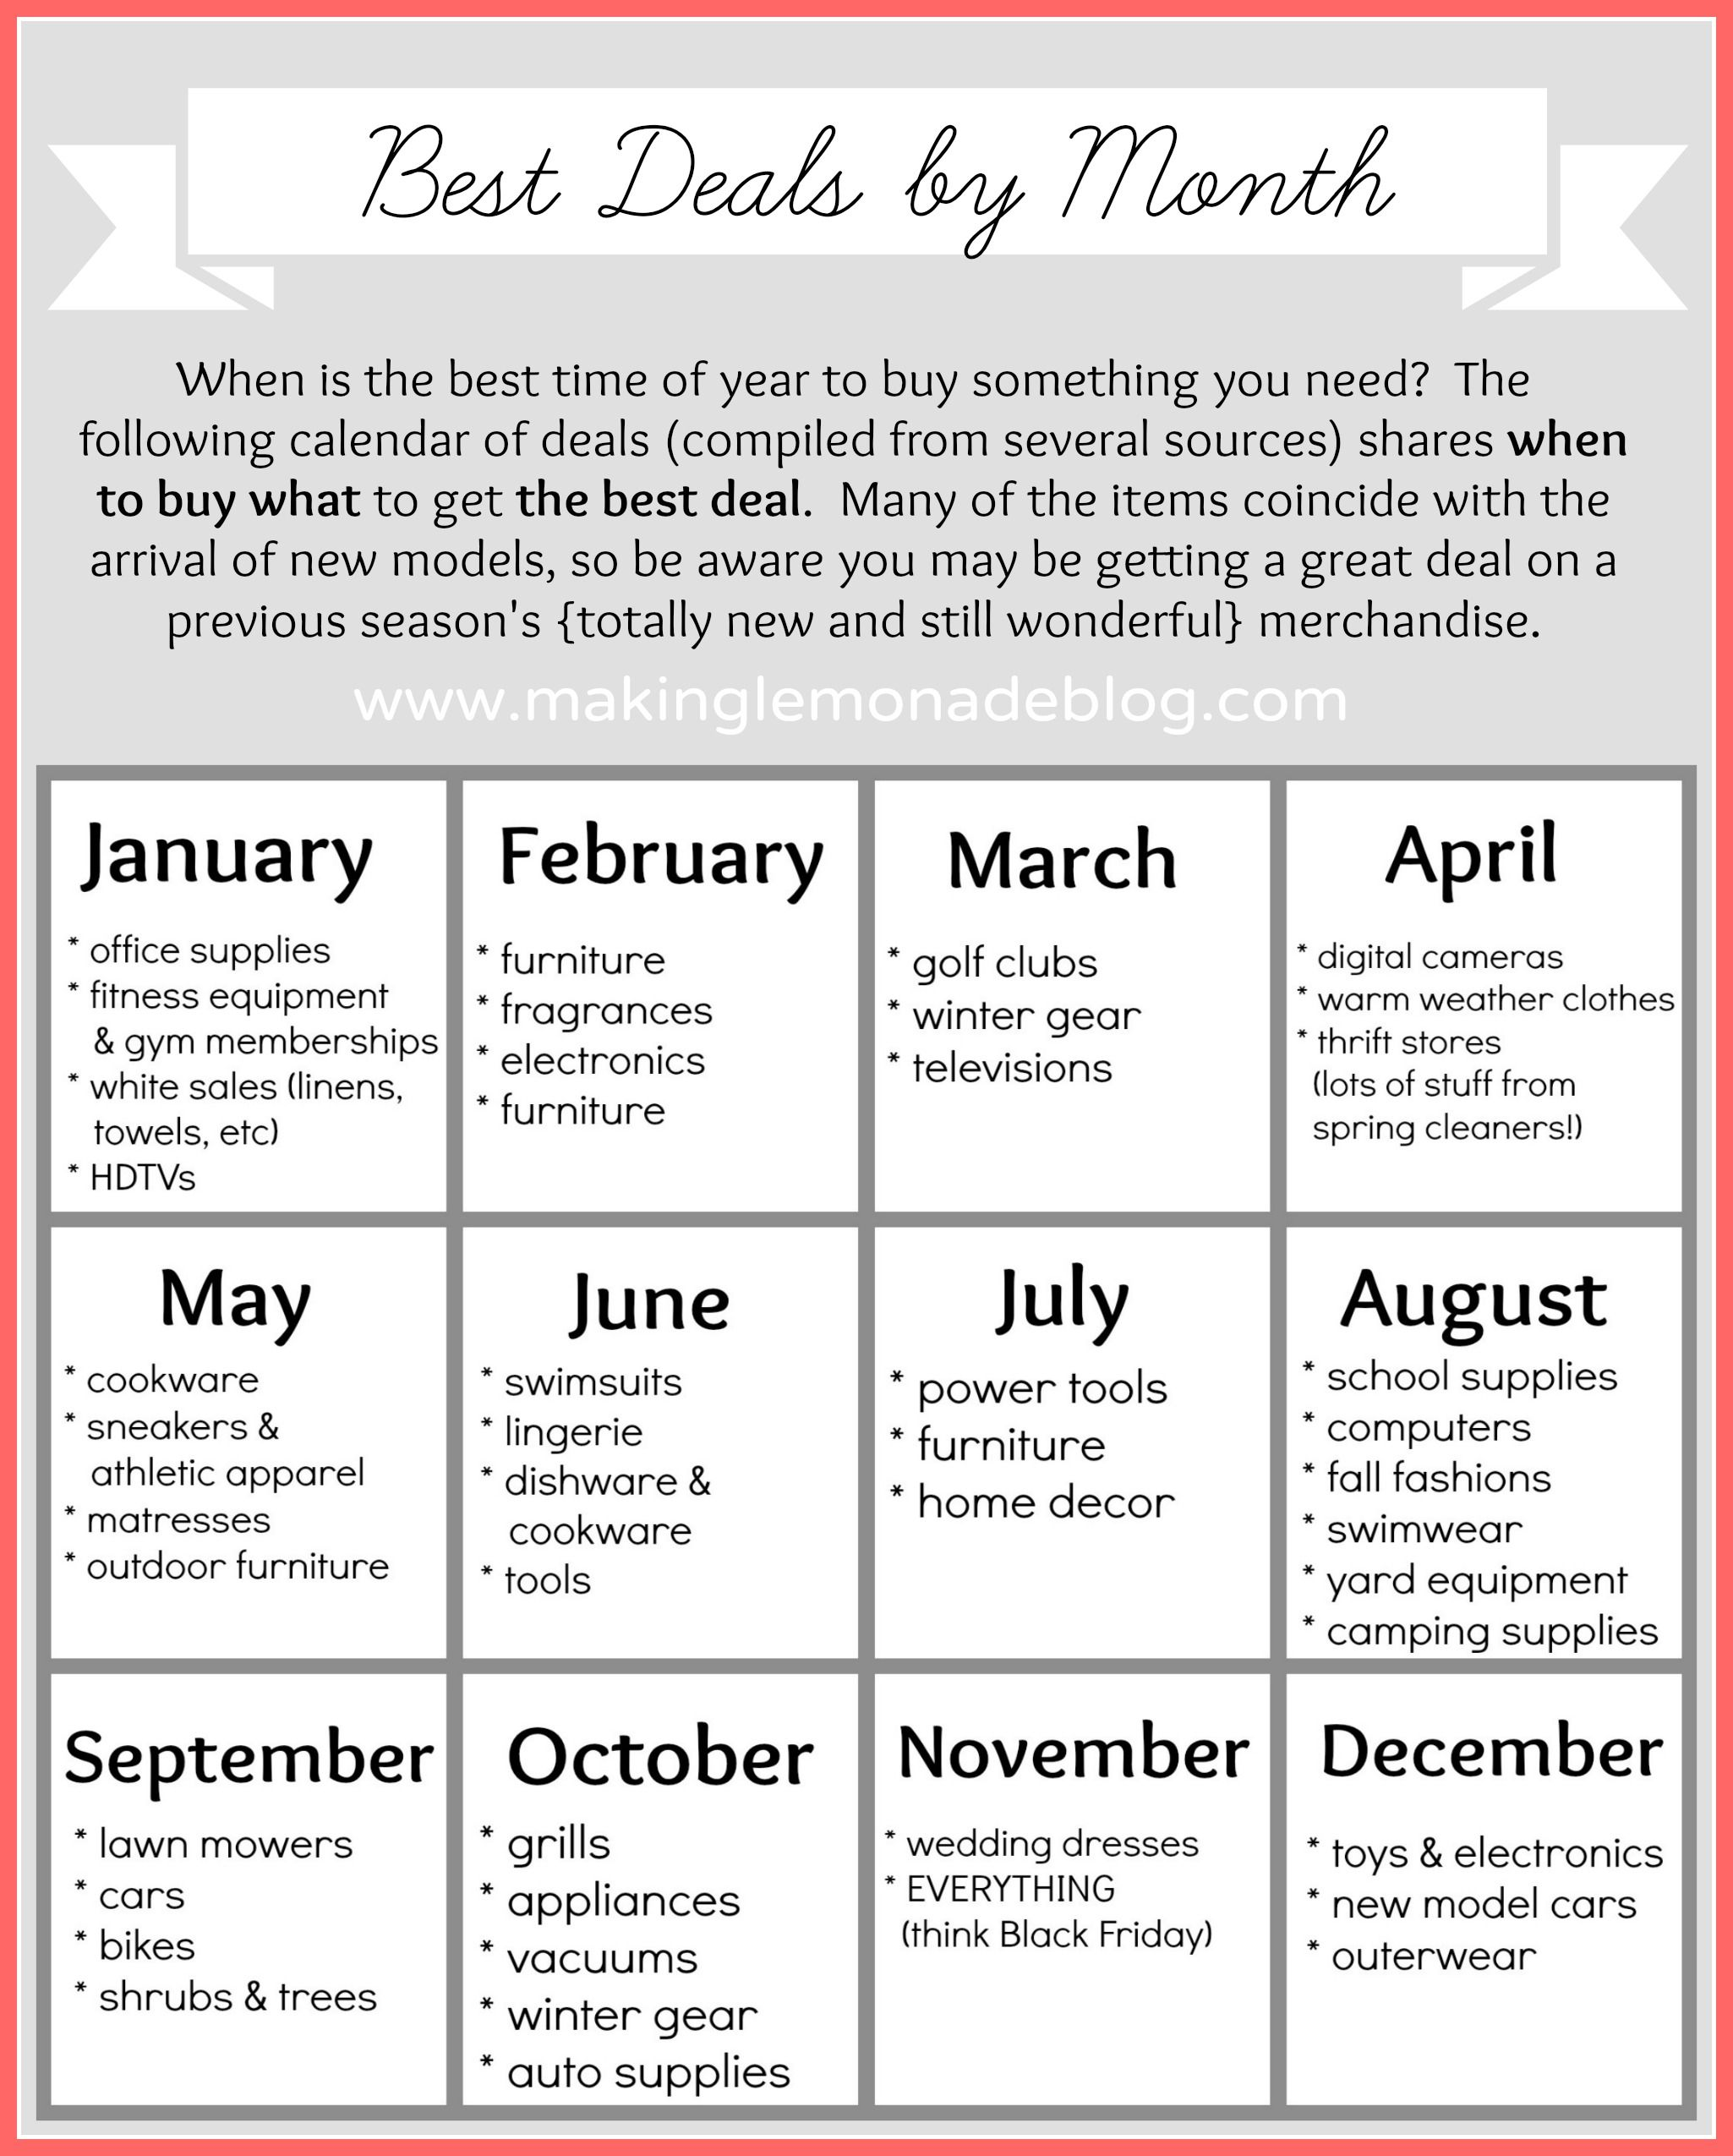 Free Printable Best Deals Calendar 1000 Life Hacks Life Hacks